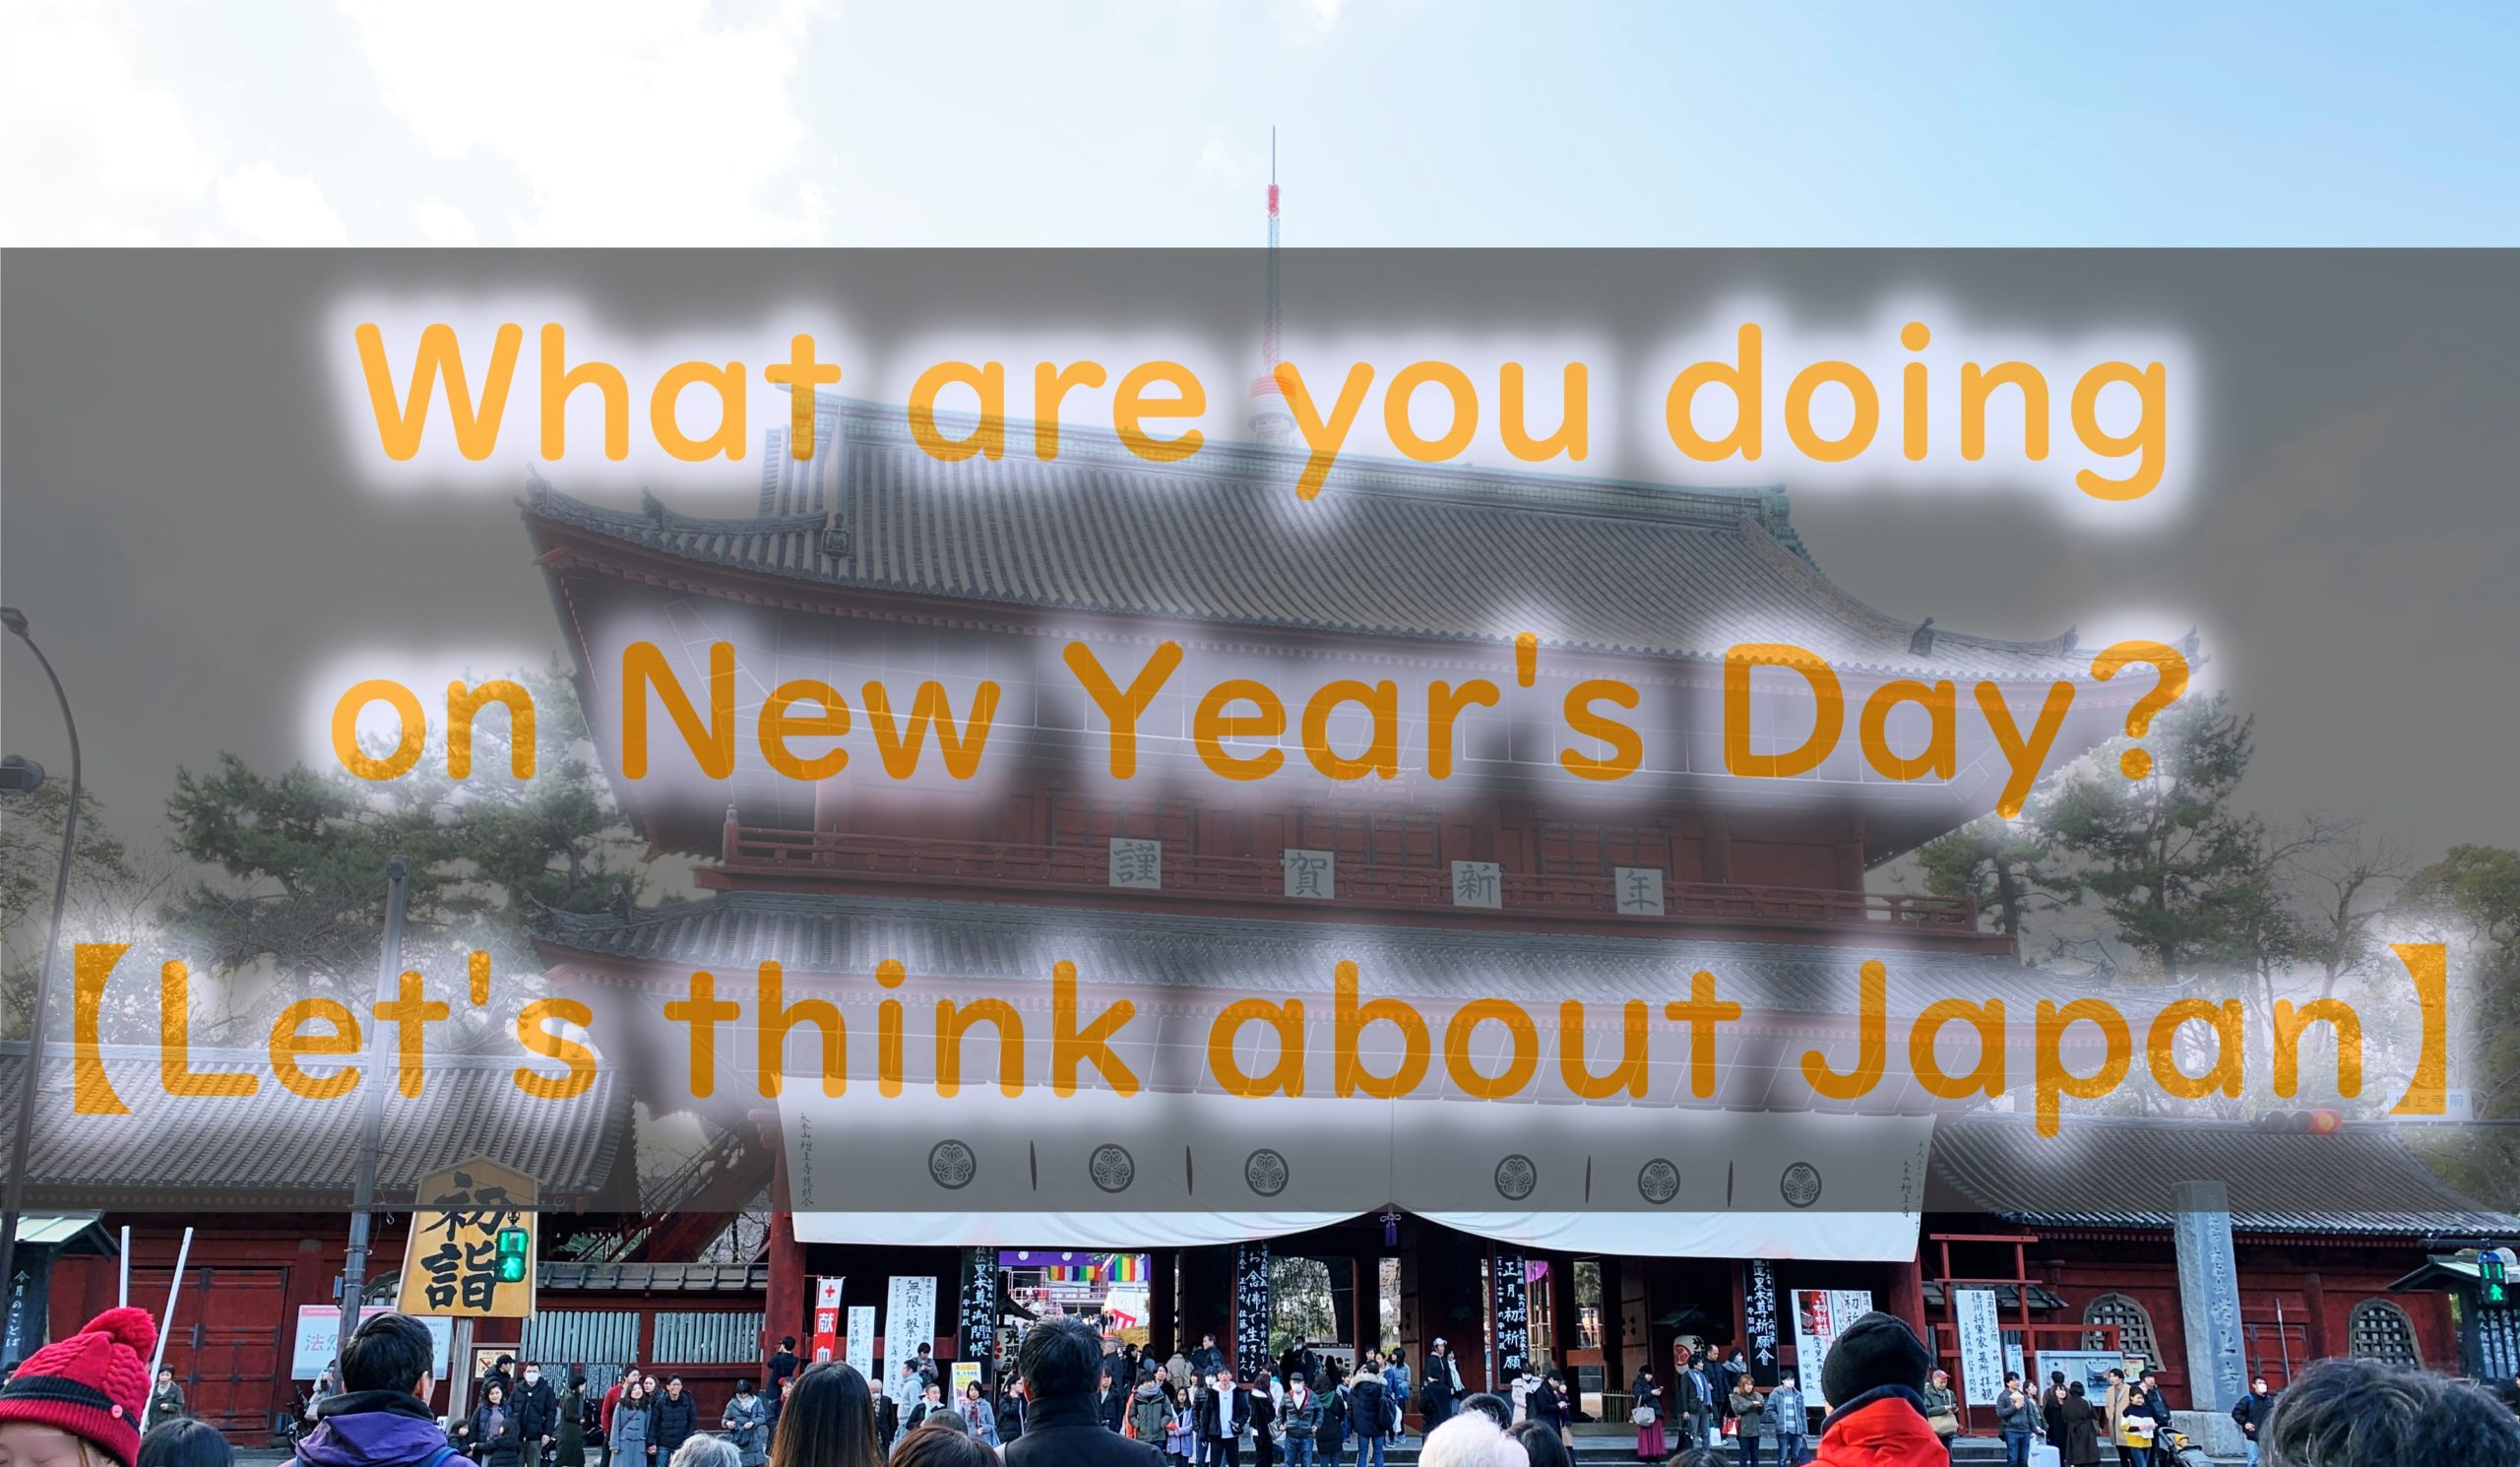 Introducing how to spend the New Year in Japan